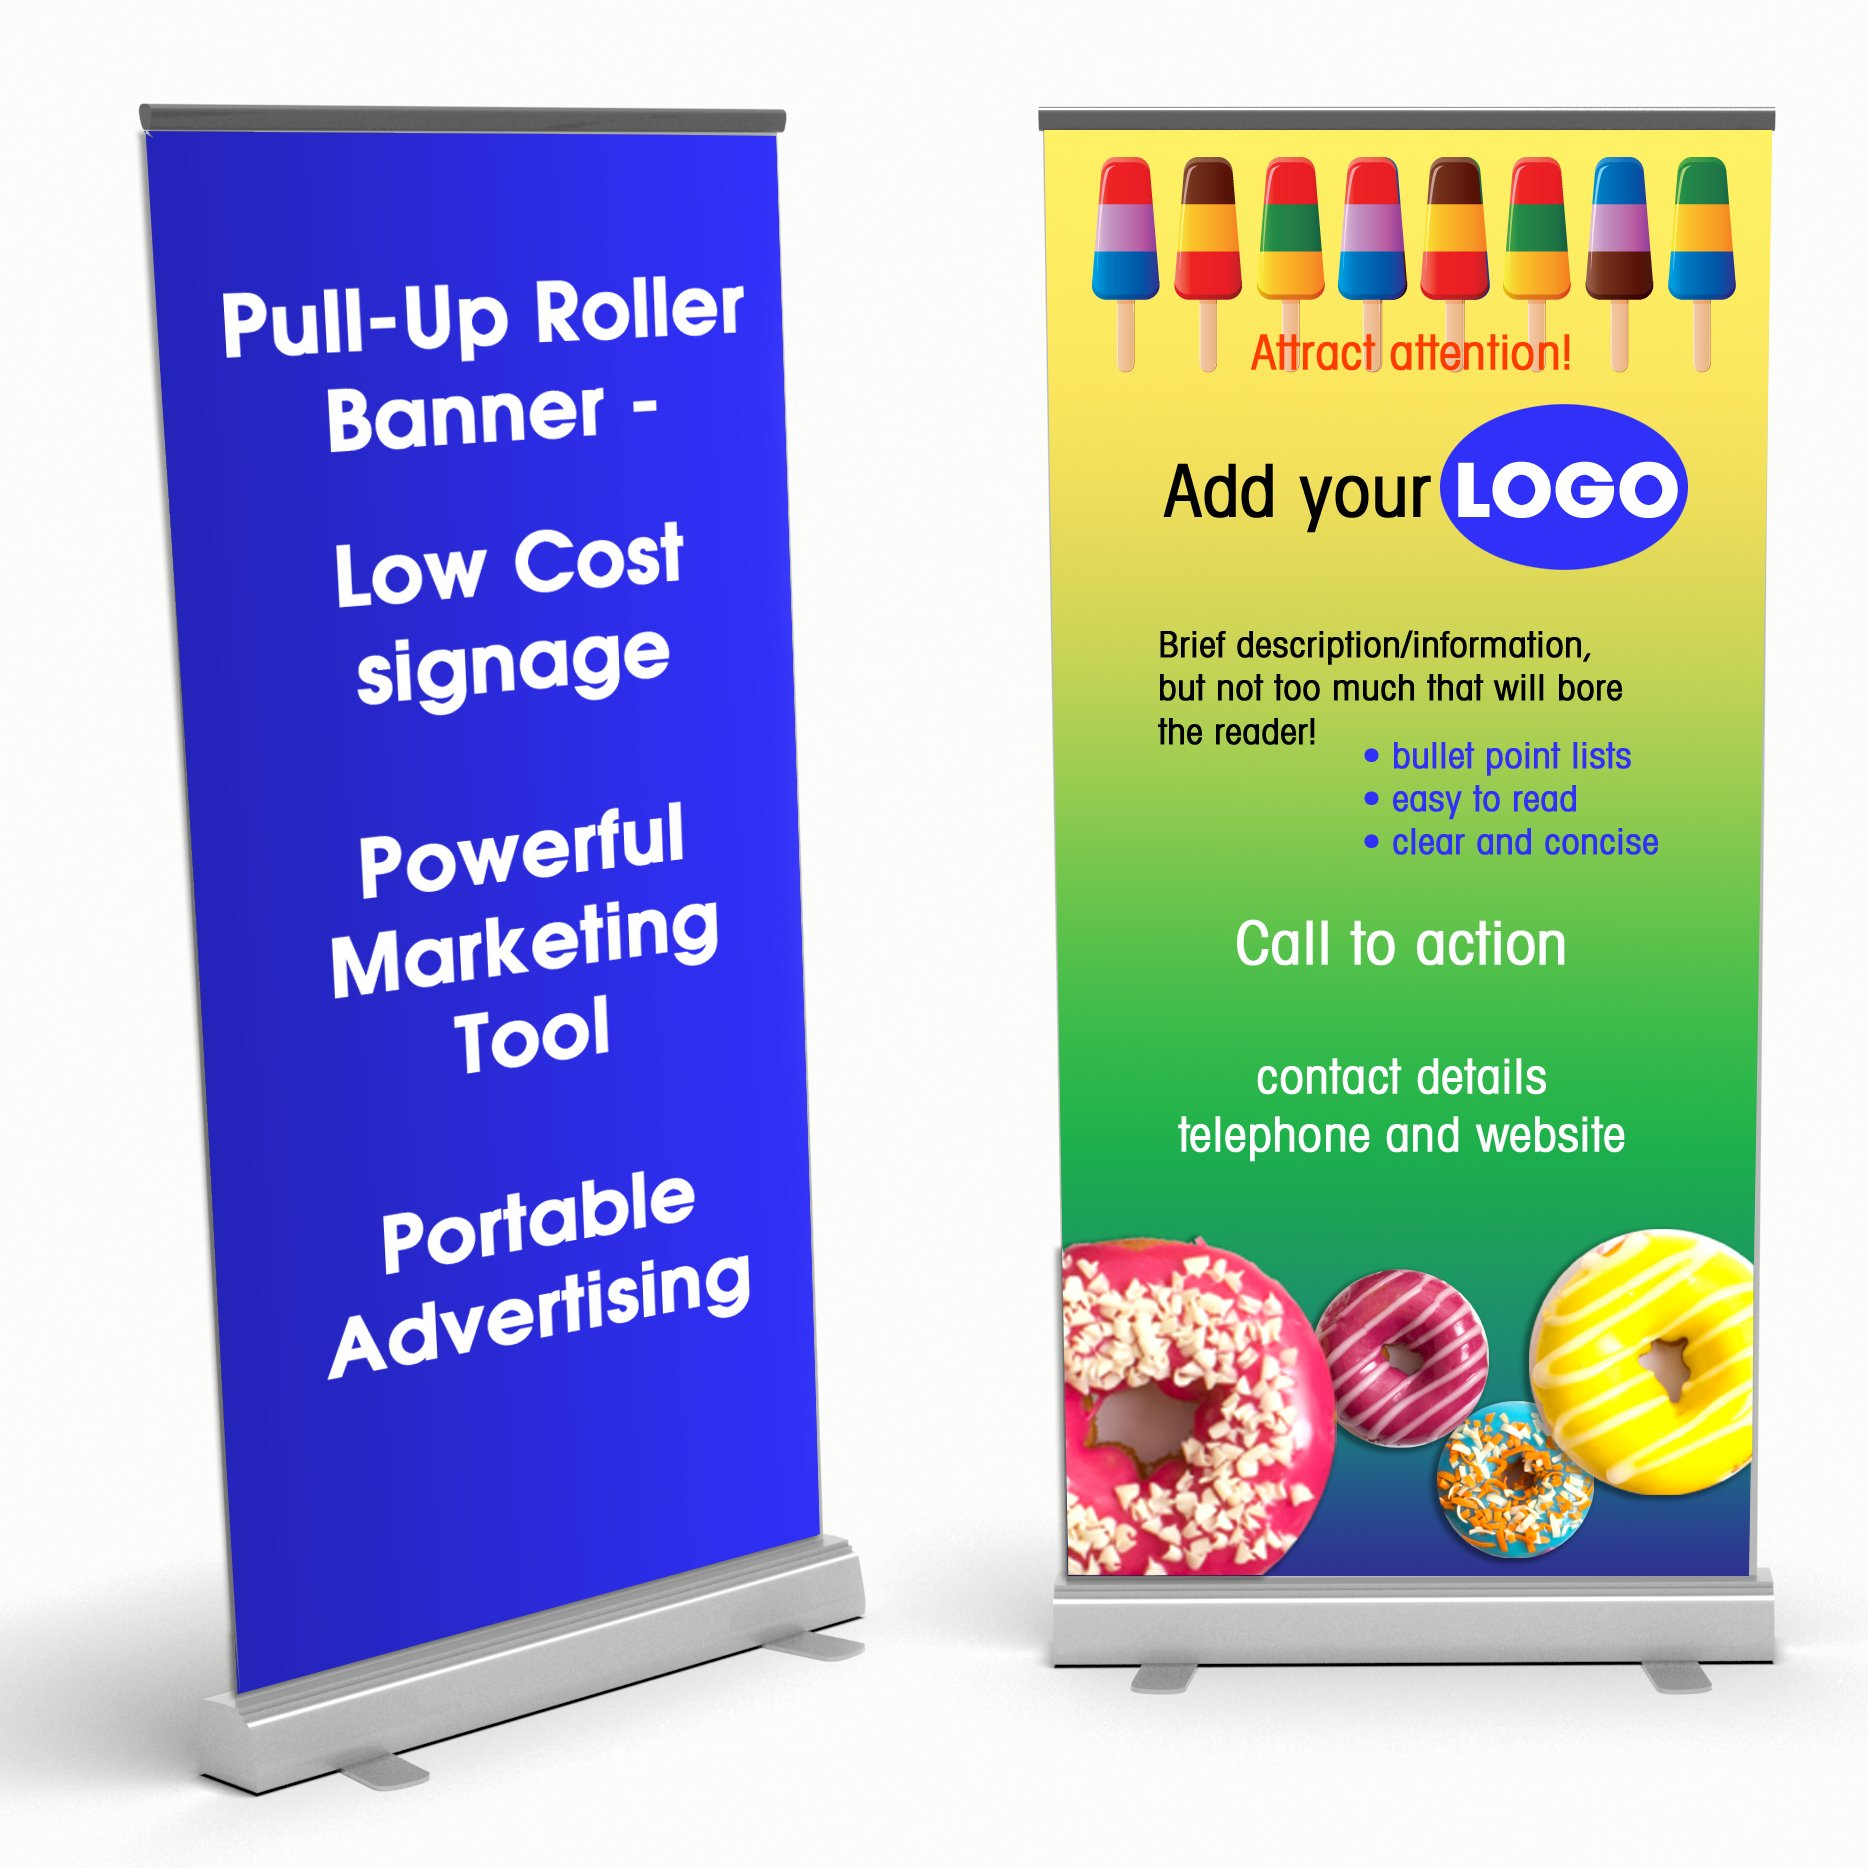 How to design a pull-up roller banner